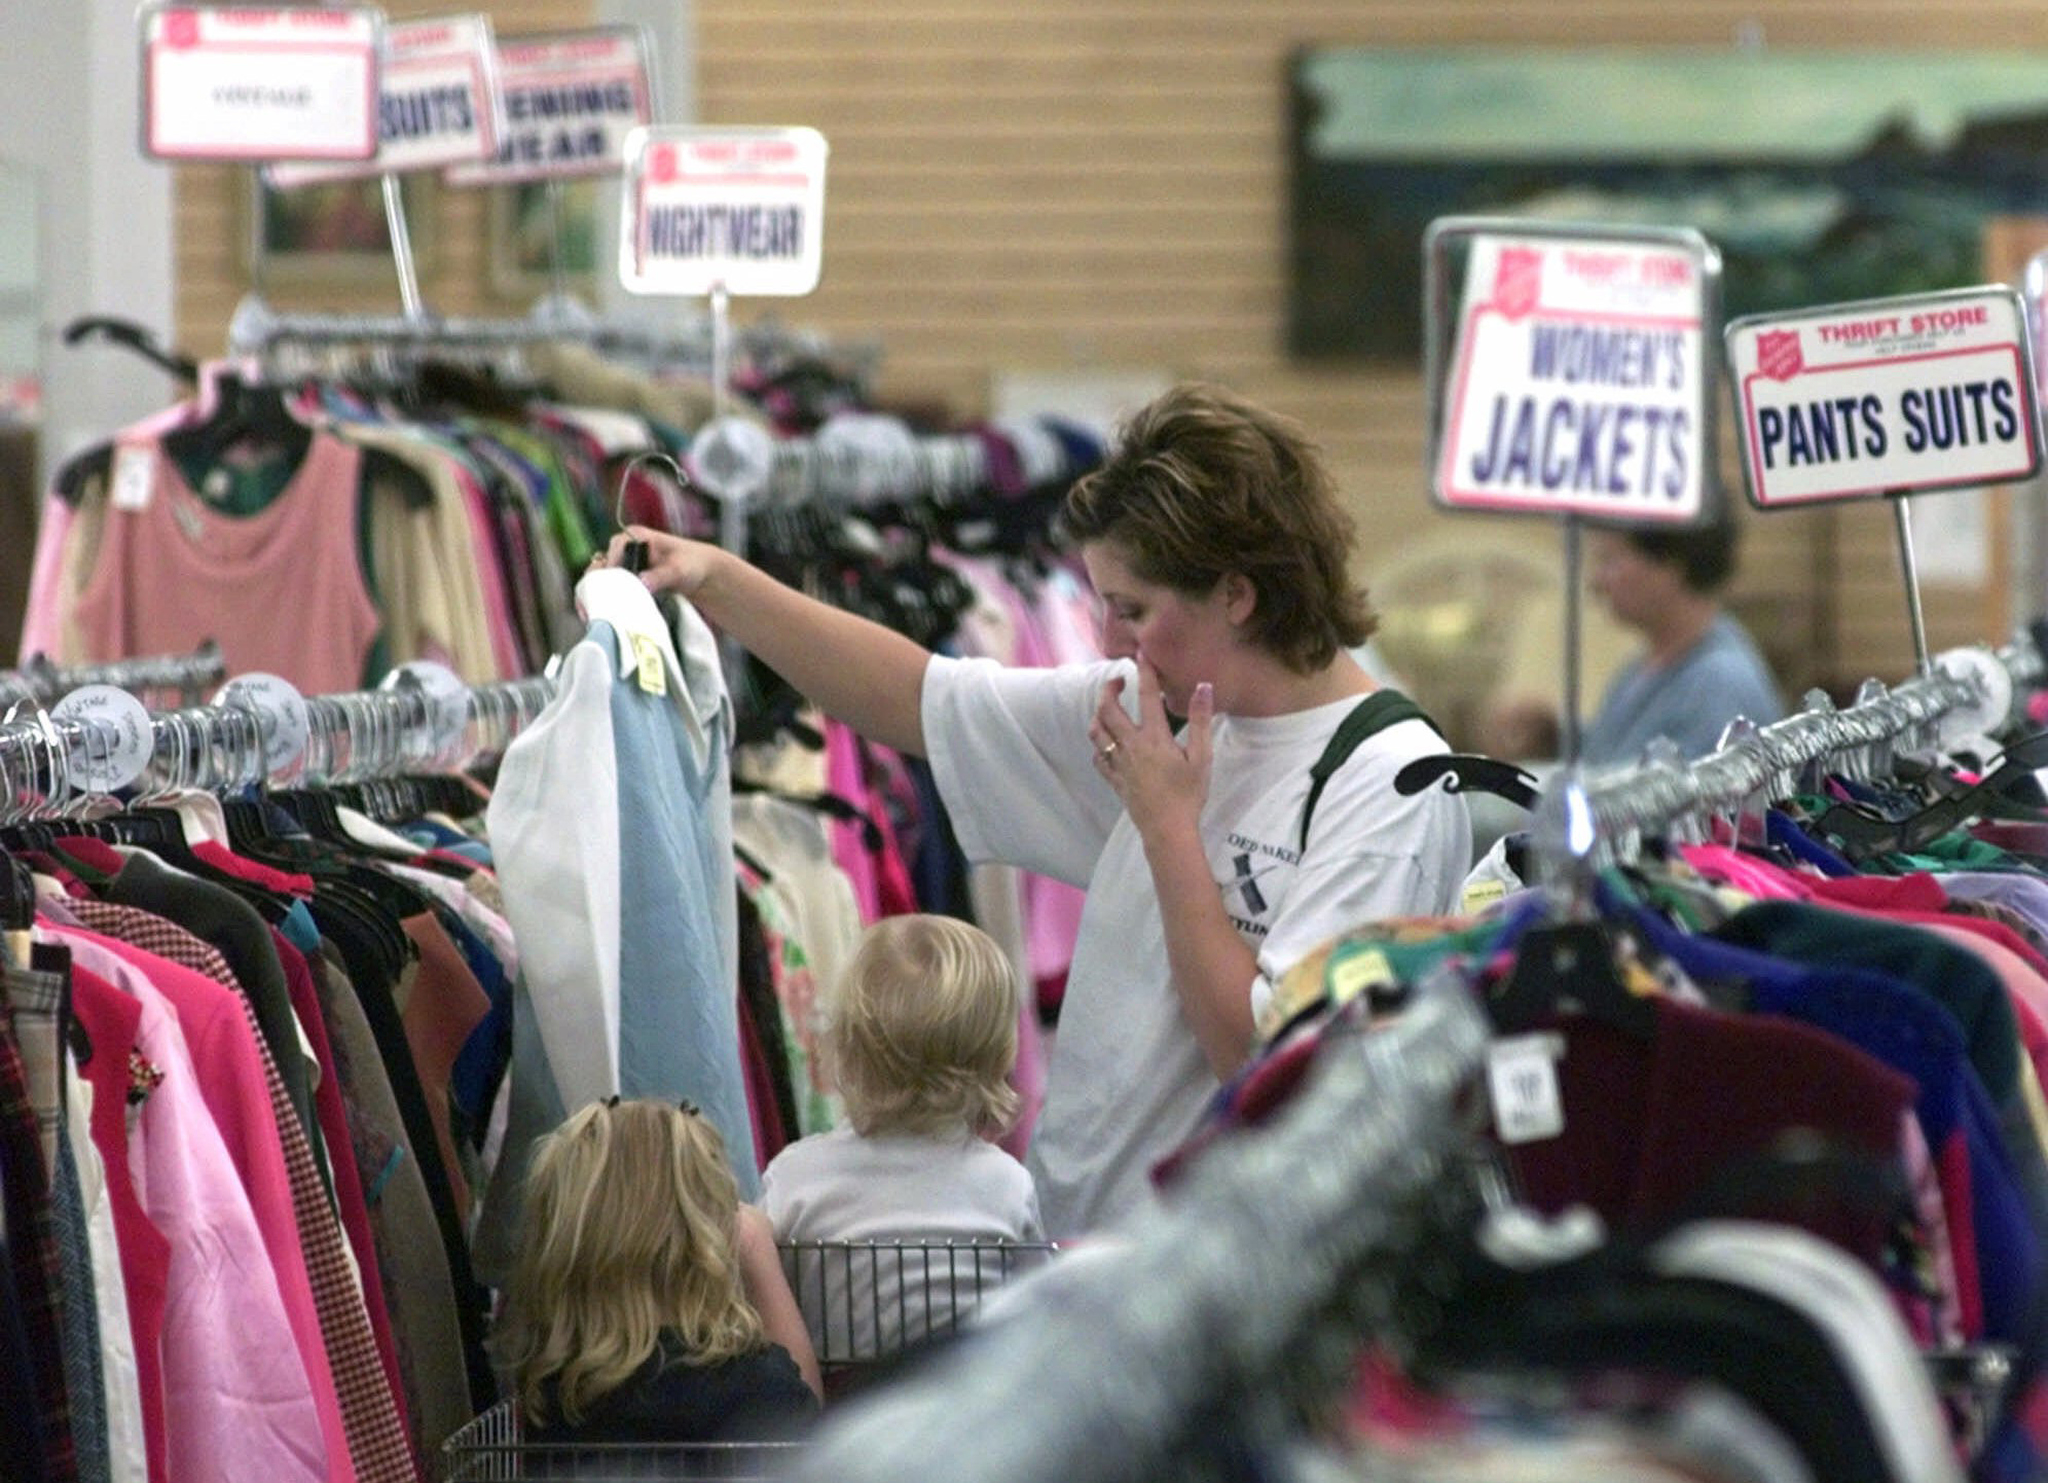 A woman rummages through thrift at Salvation Army.